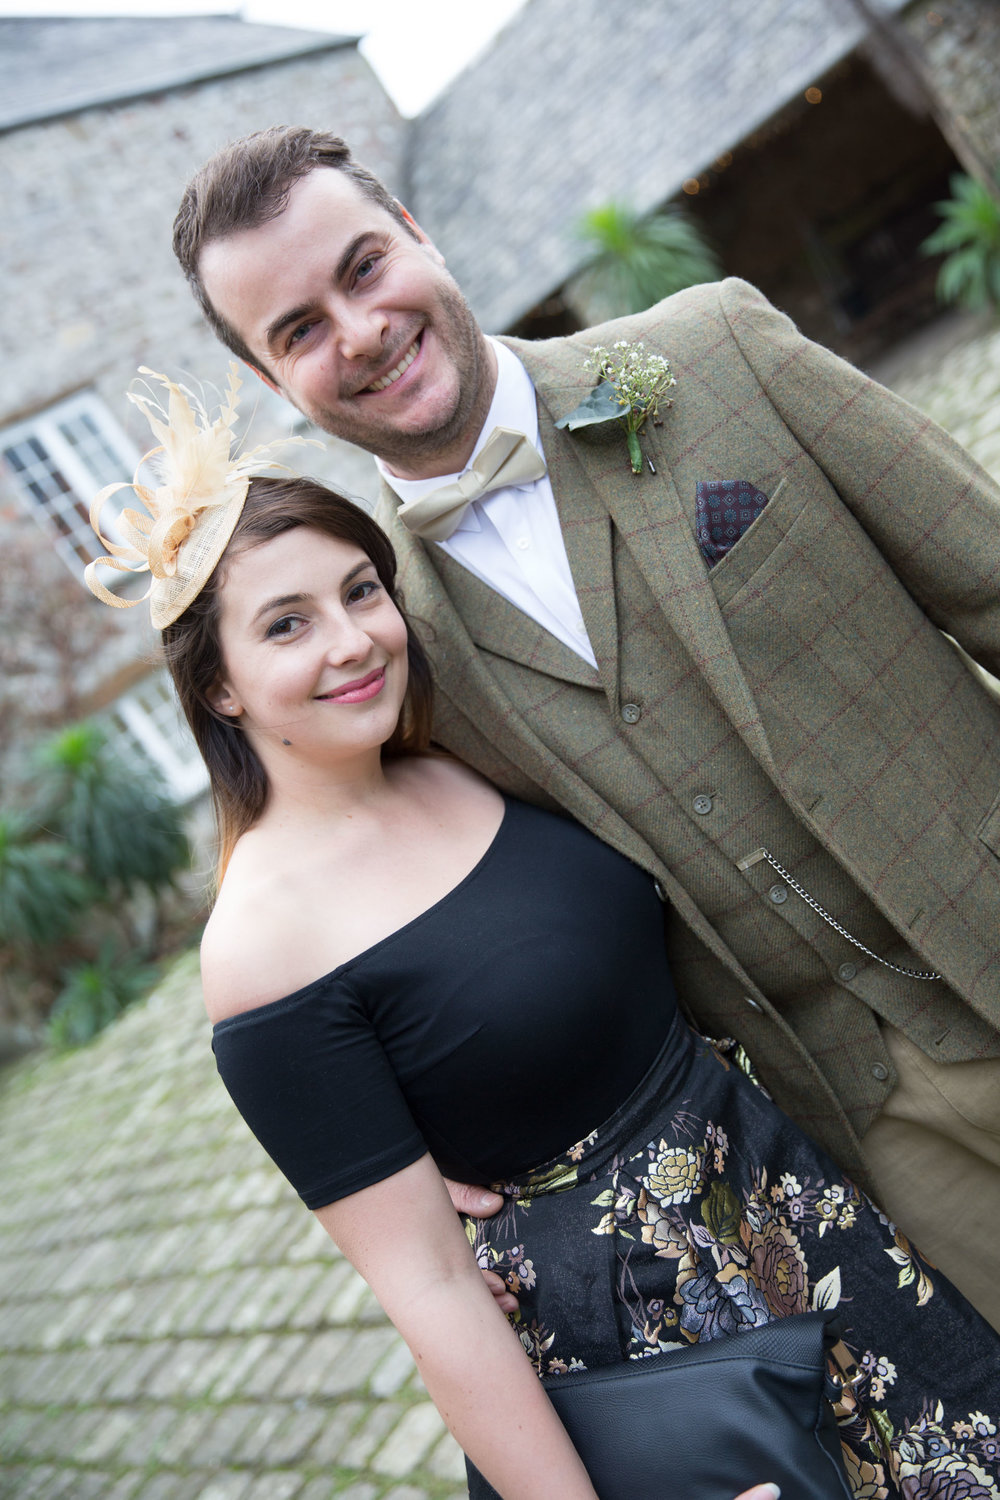 Jess & Ben - Bristol Wedding Photographer - Wright Wedding Photography - 110